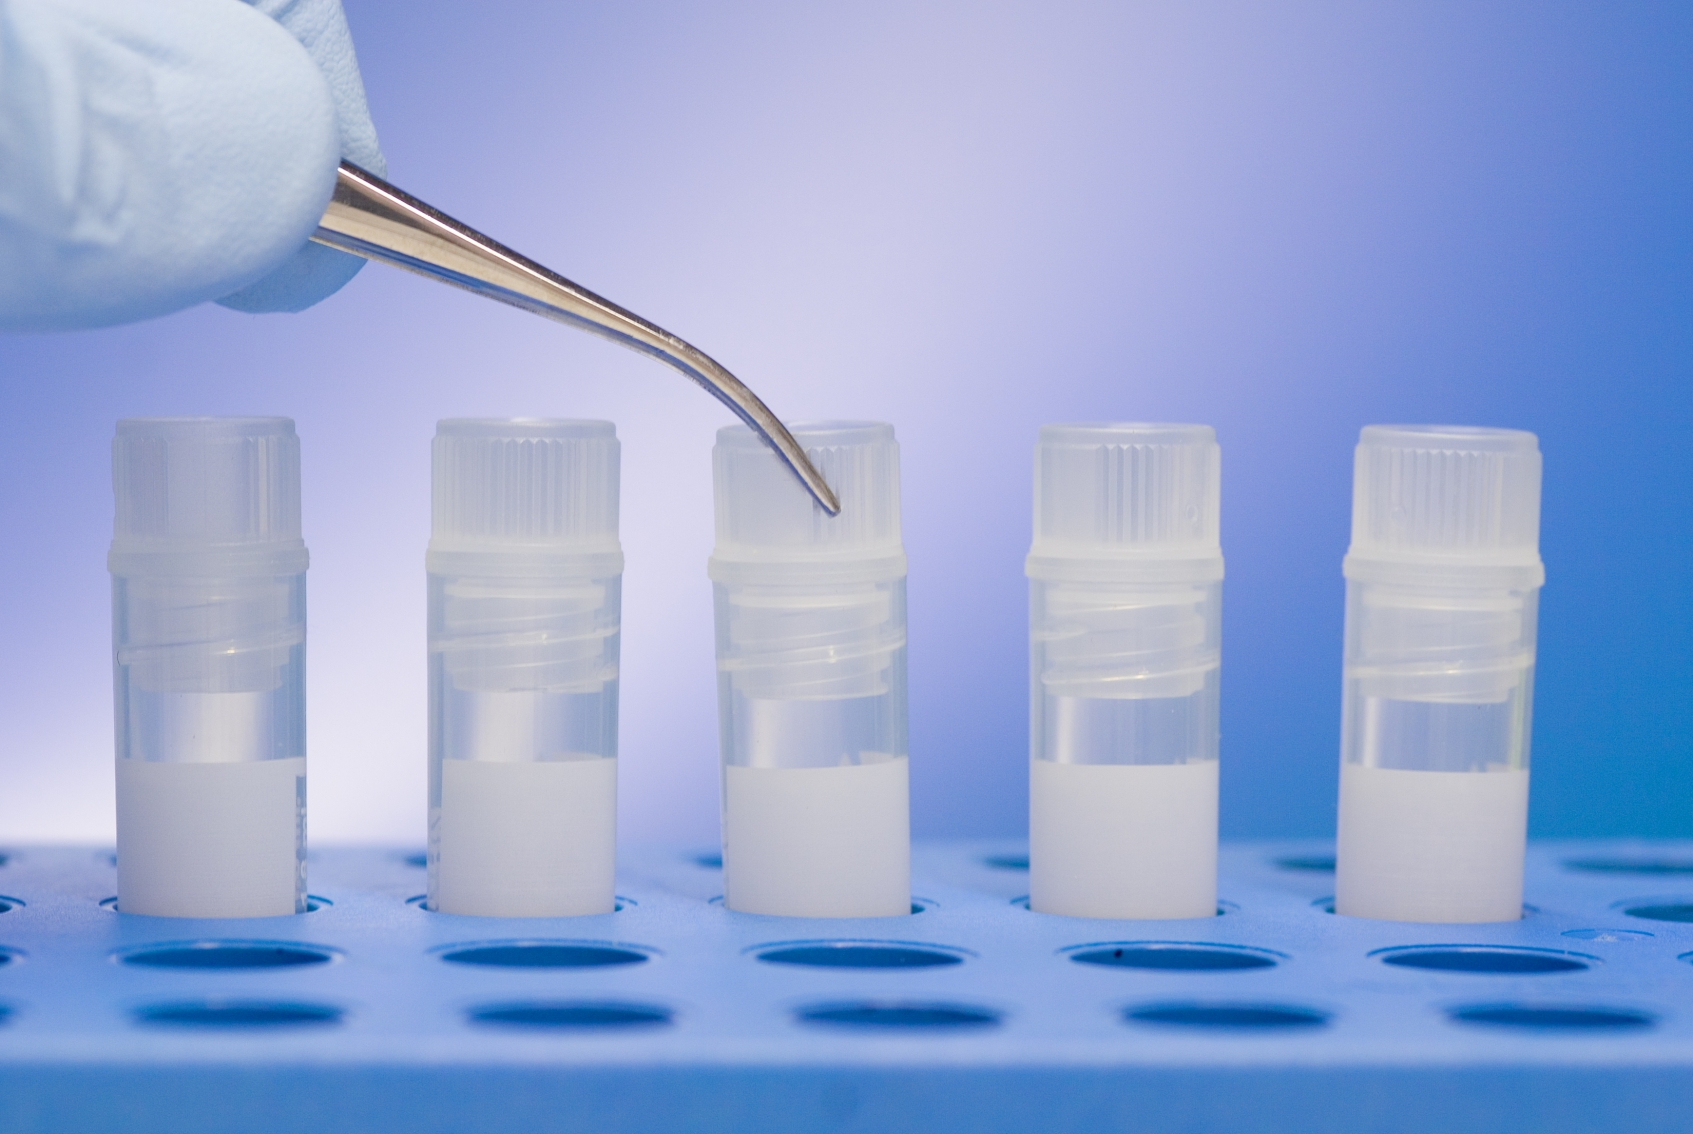 Stem_Cells, featured on www.blog.marketresearch.com